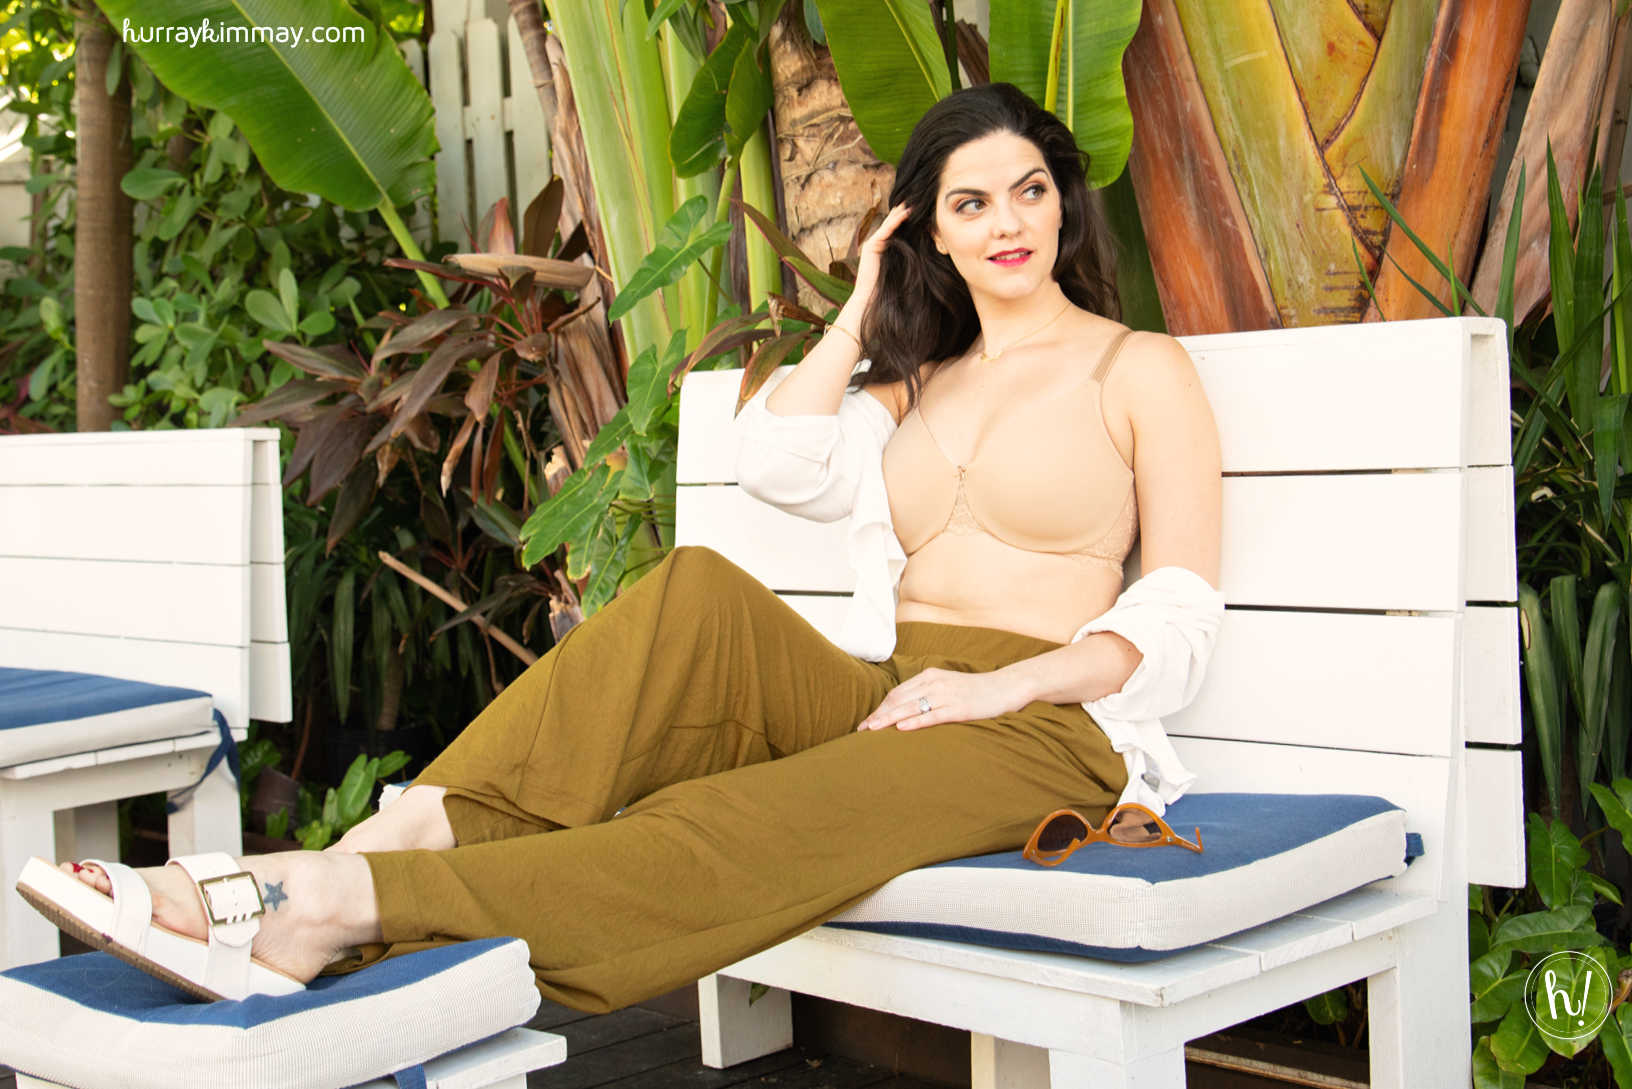 Kimmay relaxing during the Hurray Vacay in Miami wearing the Lena Minimizer from Dominique